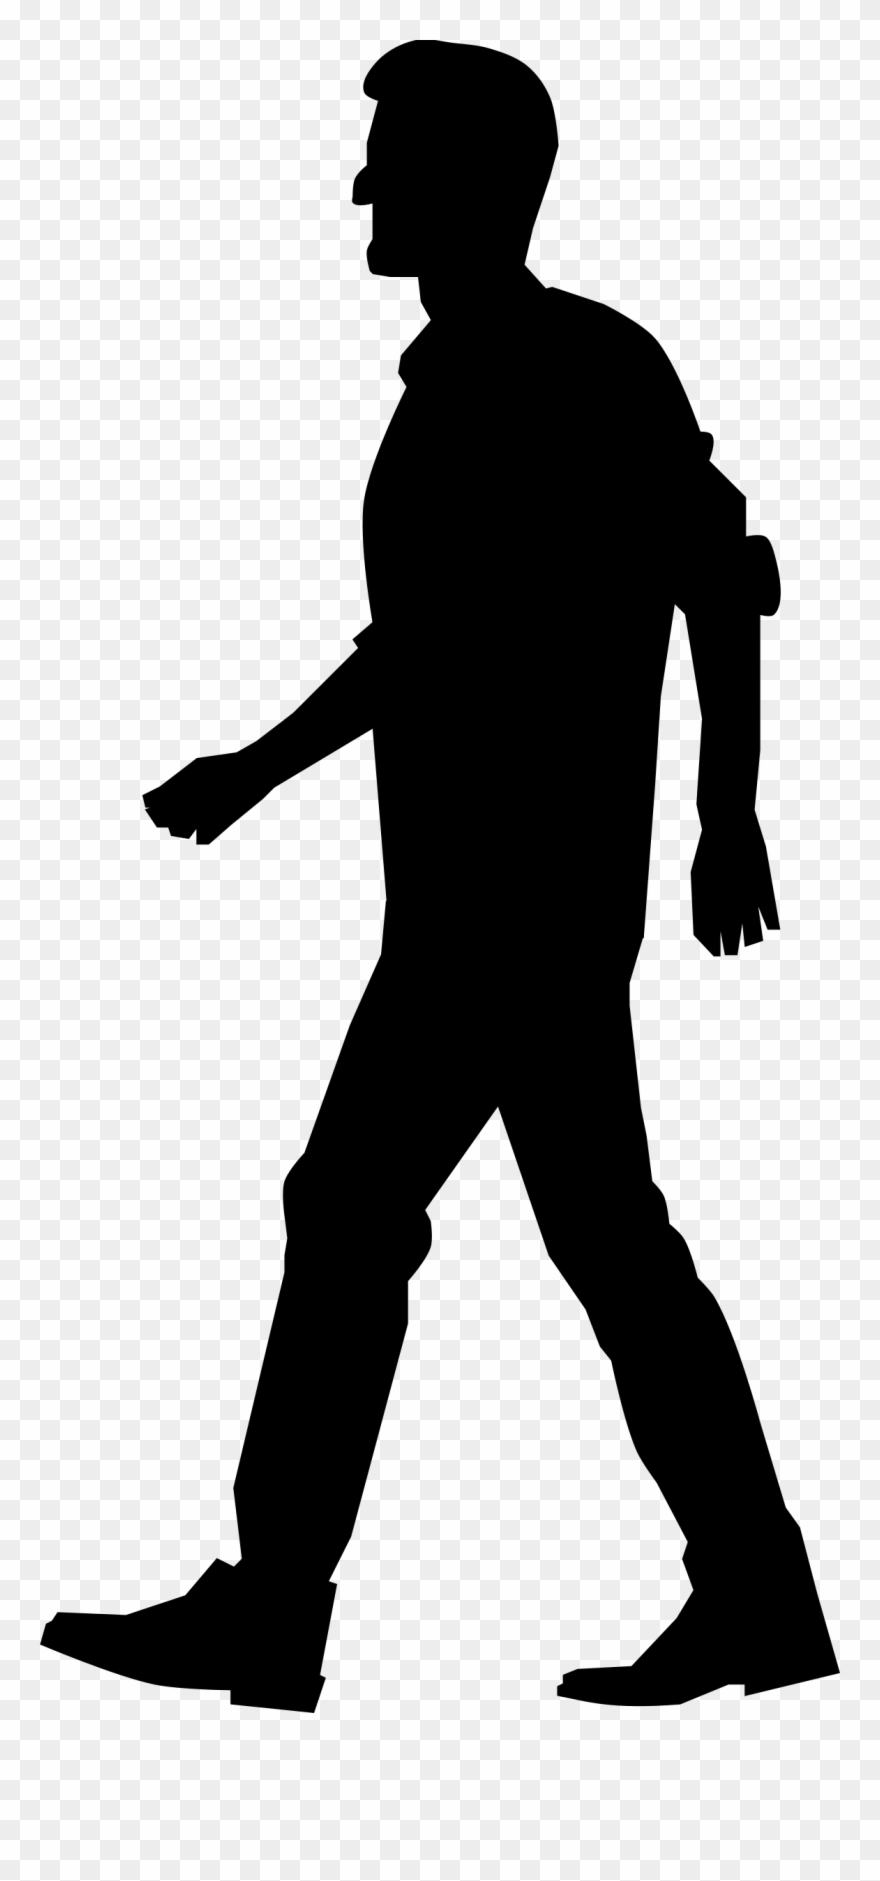 Walking legs clipart transparent image freeuse library Walking Clipart Png - People Silhouette Walking Png Transparent Png ... image freeuse library